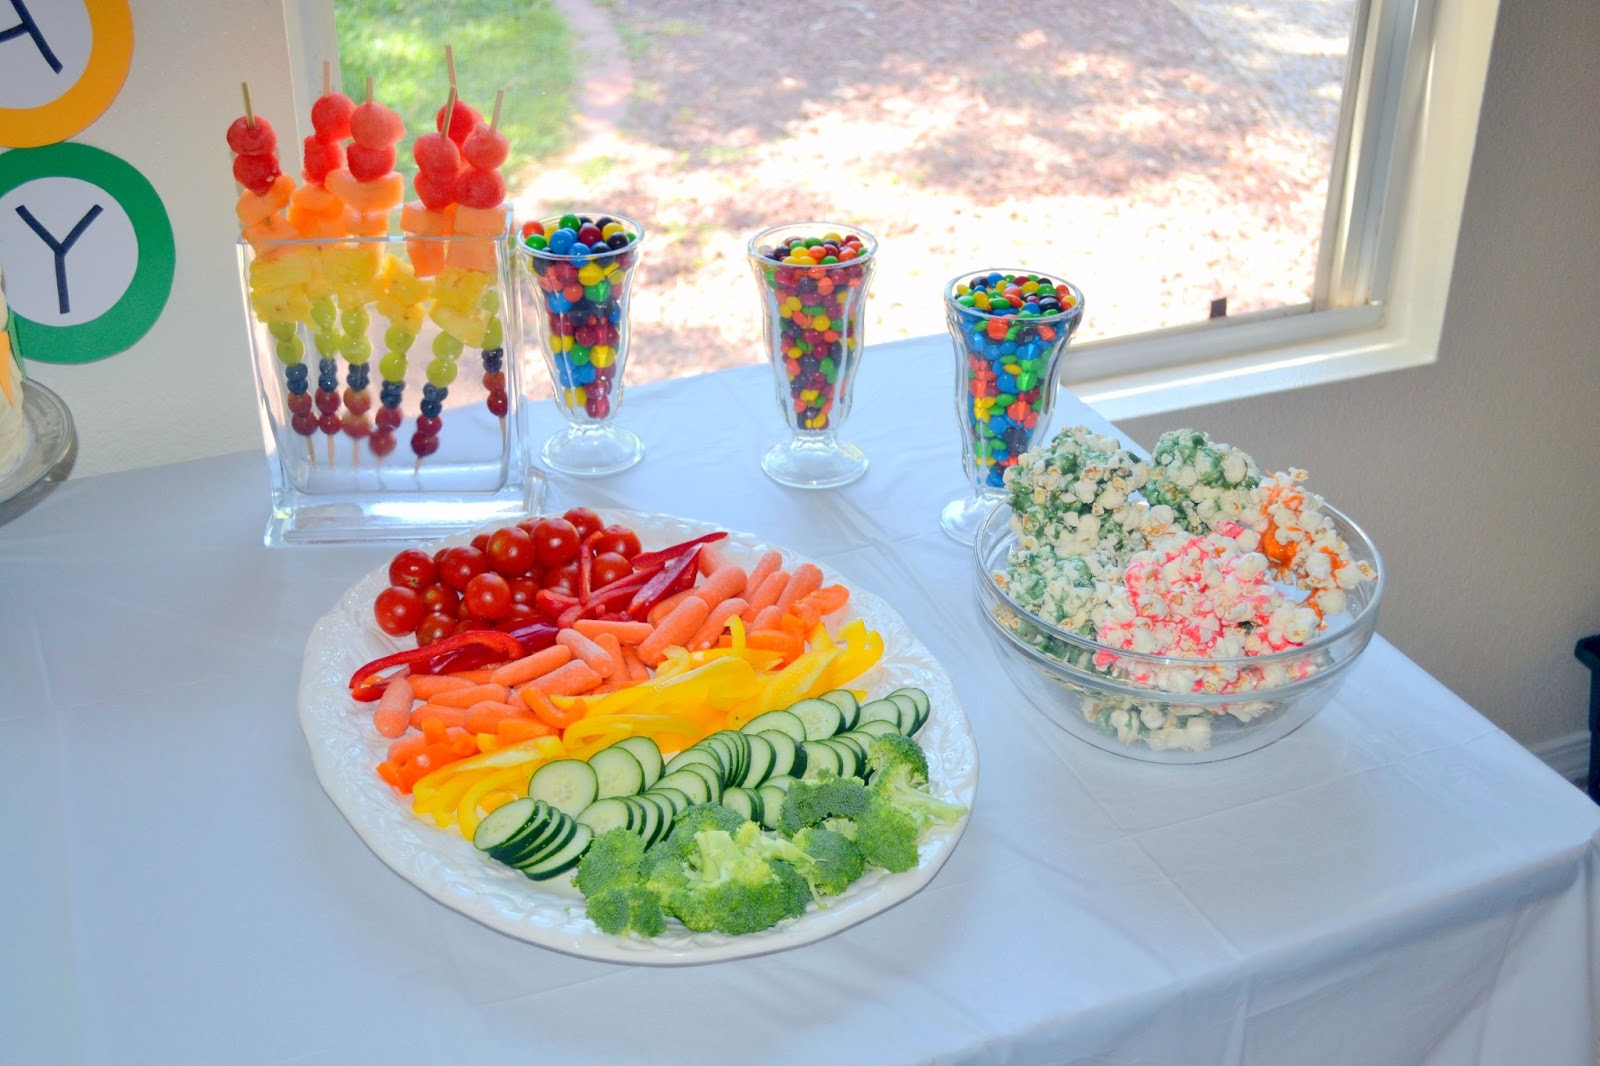 My Little Pony Birthday Party Food Ideas Rainbow birthday party